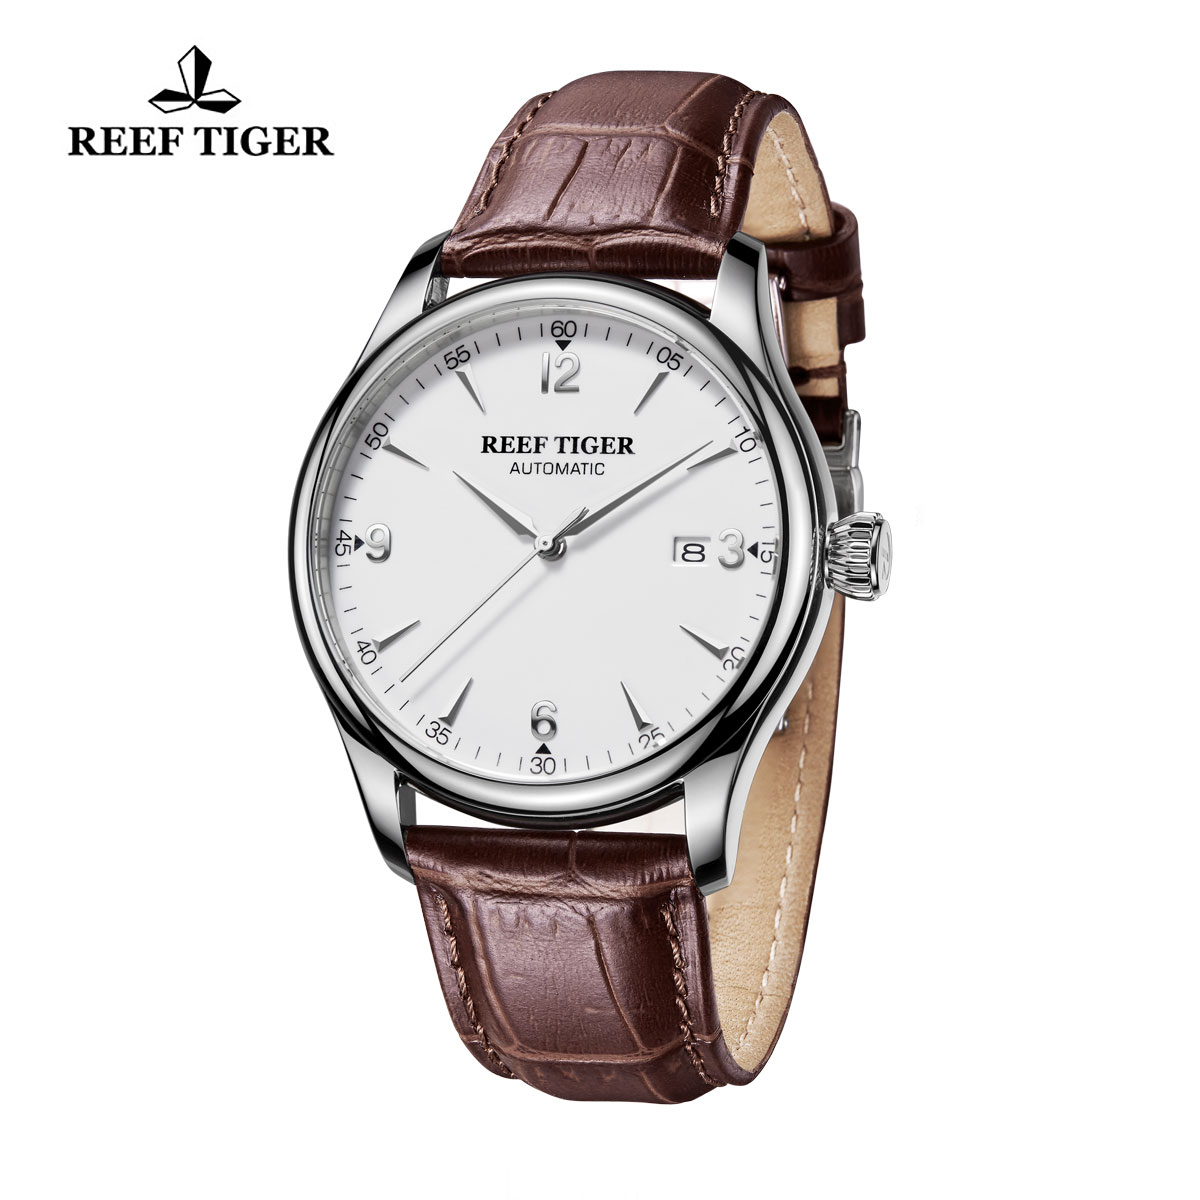 Reef Tiger Heritage Dress Watch Automatic White Dial Calfskin Leather Steel Case RGA823G-YWB